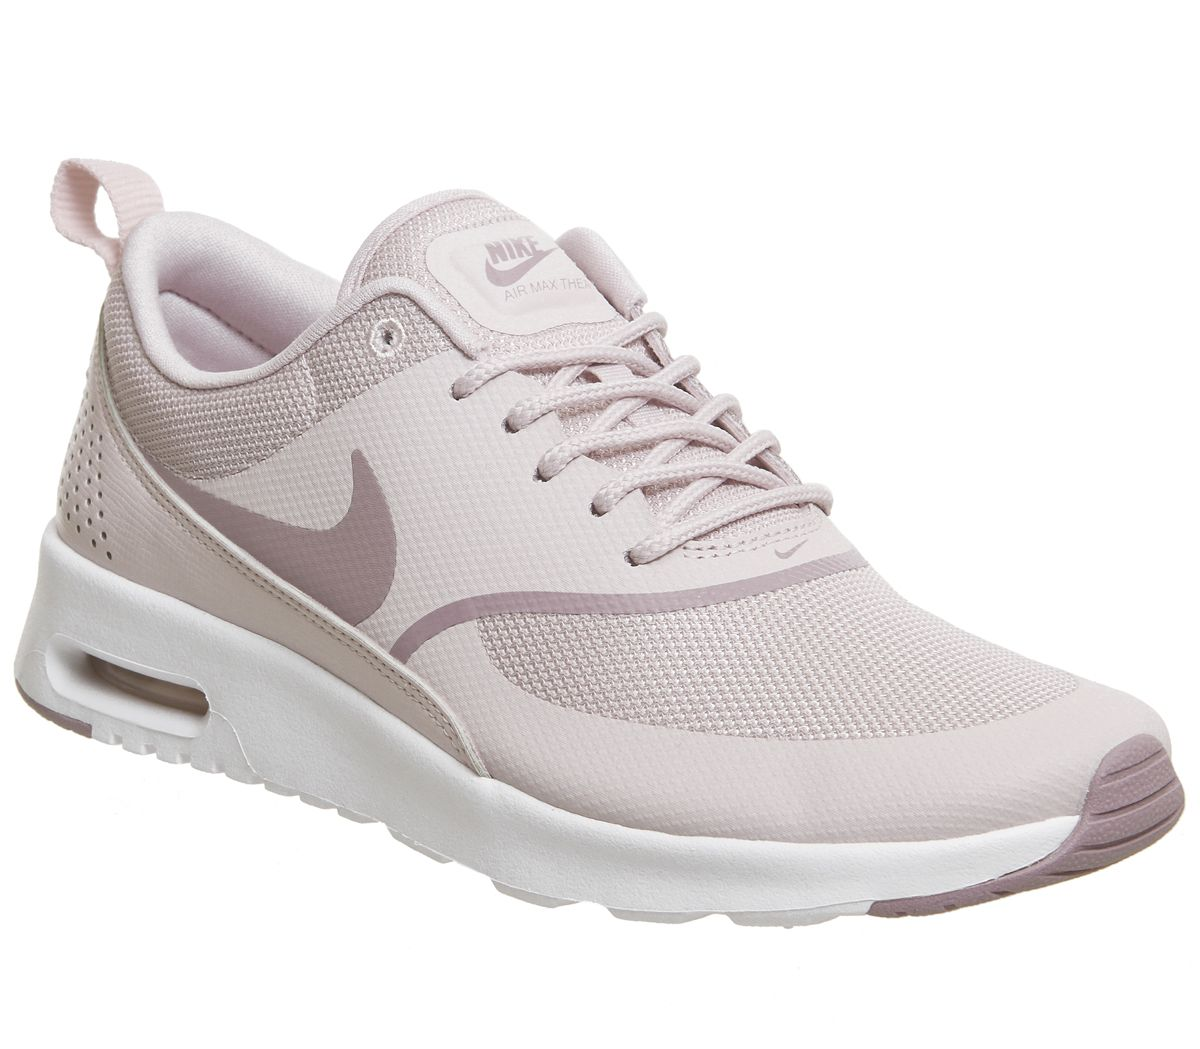 new arrival 3674d 9c0f3 Nike Air Max Thea Trainers Barely Rose Elemental Rose White - Hers ...